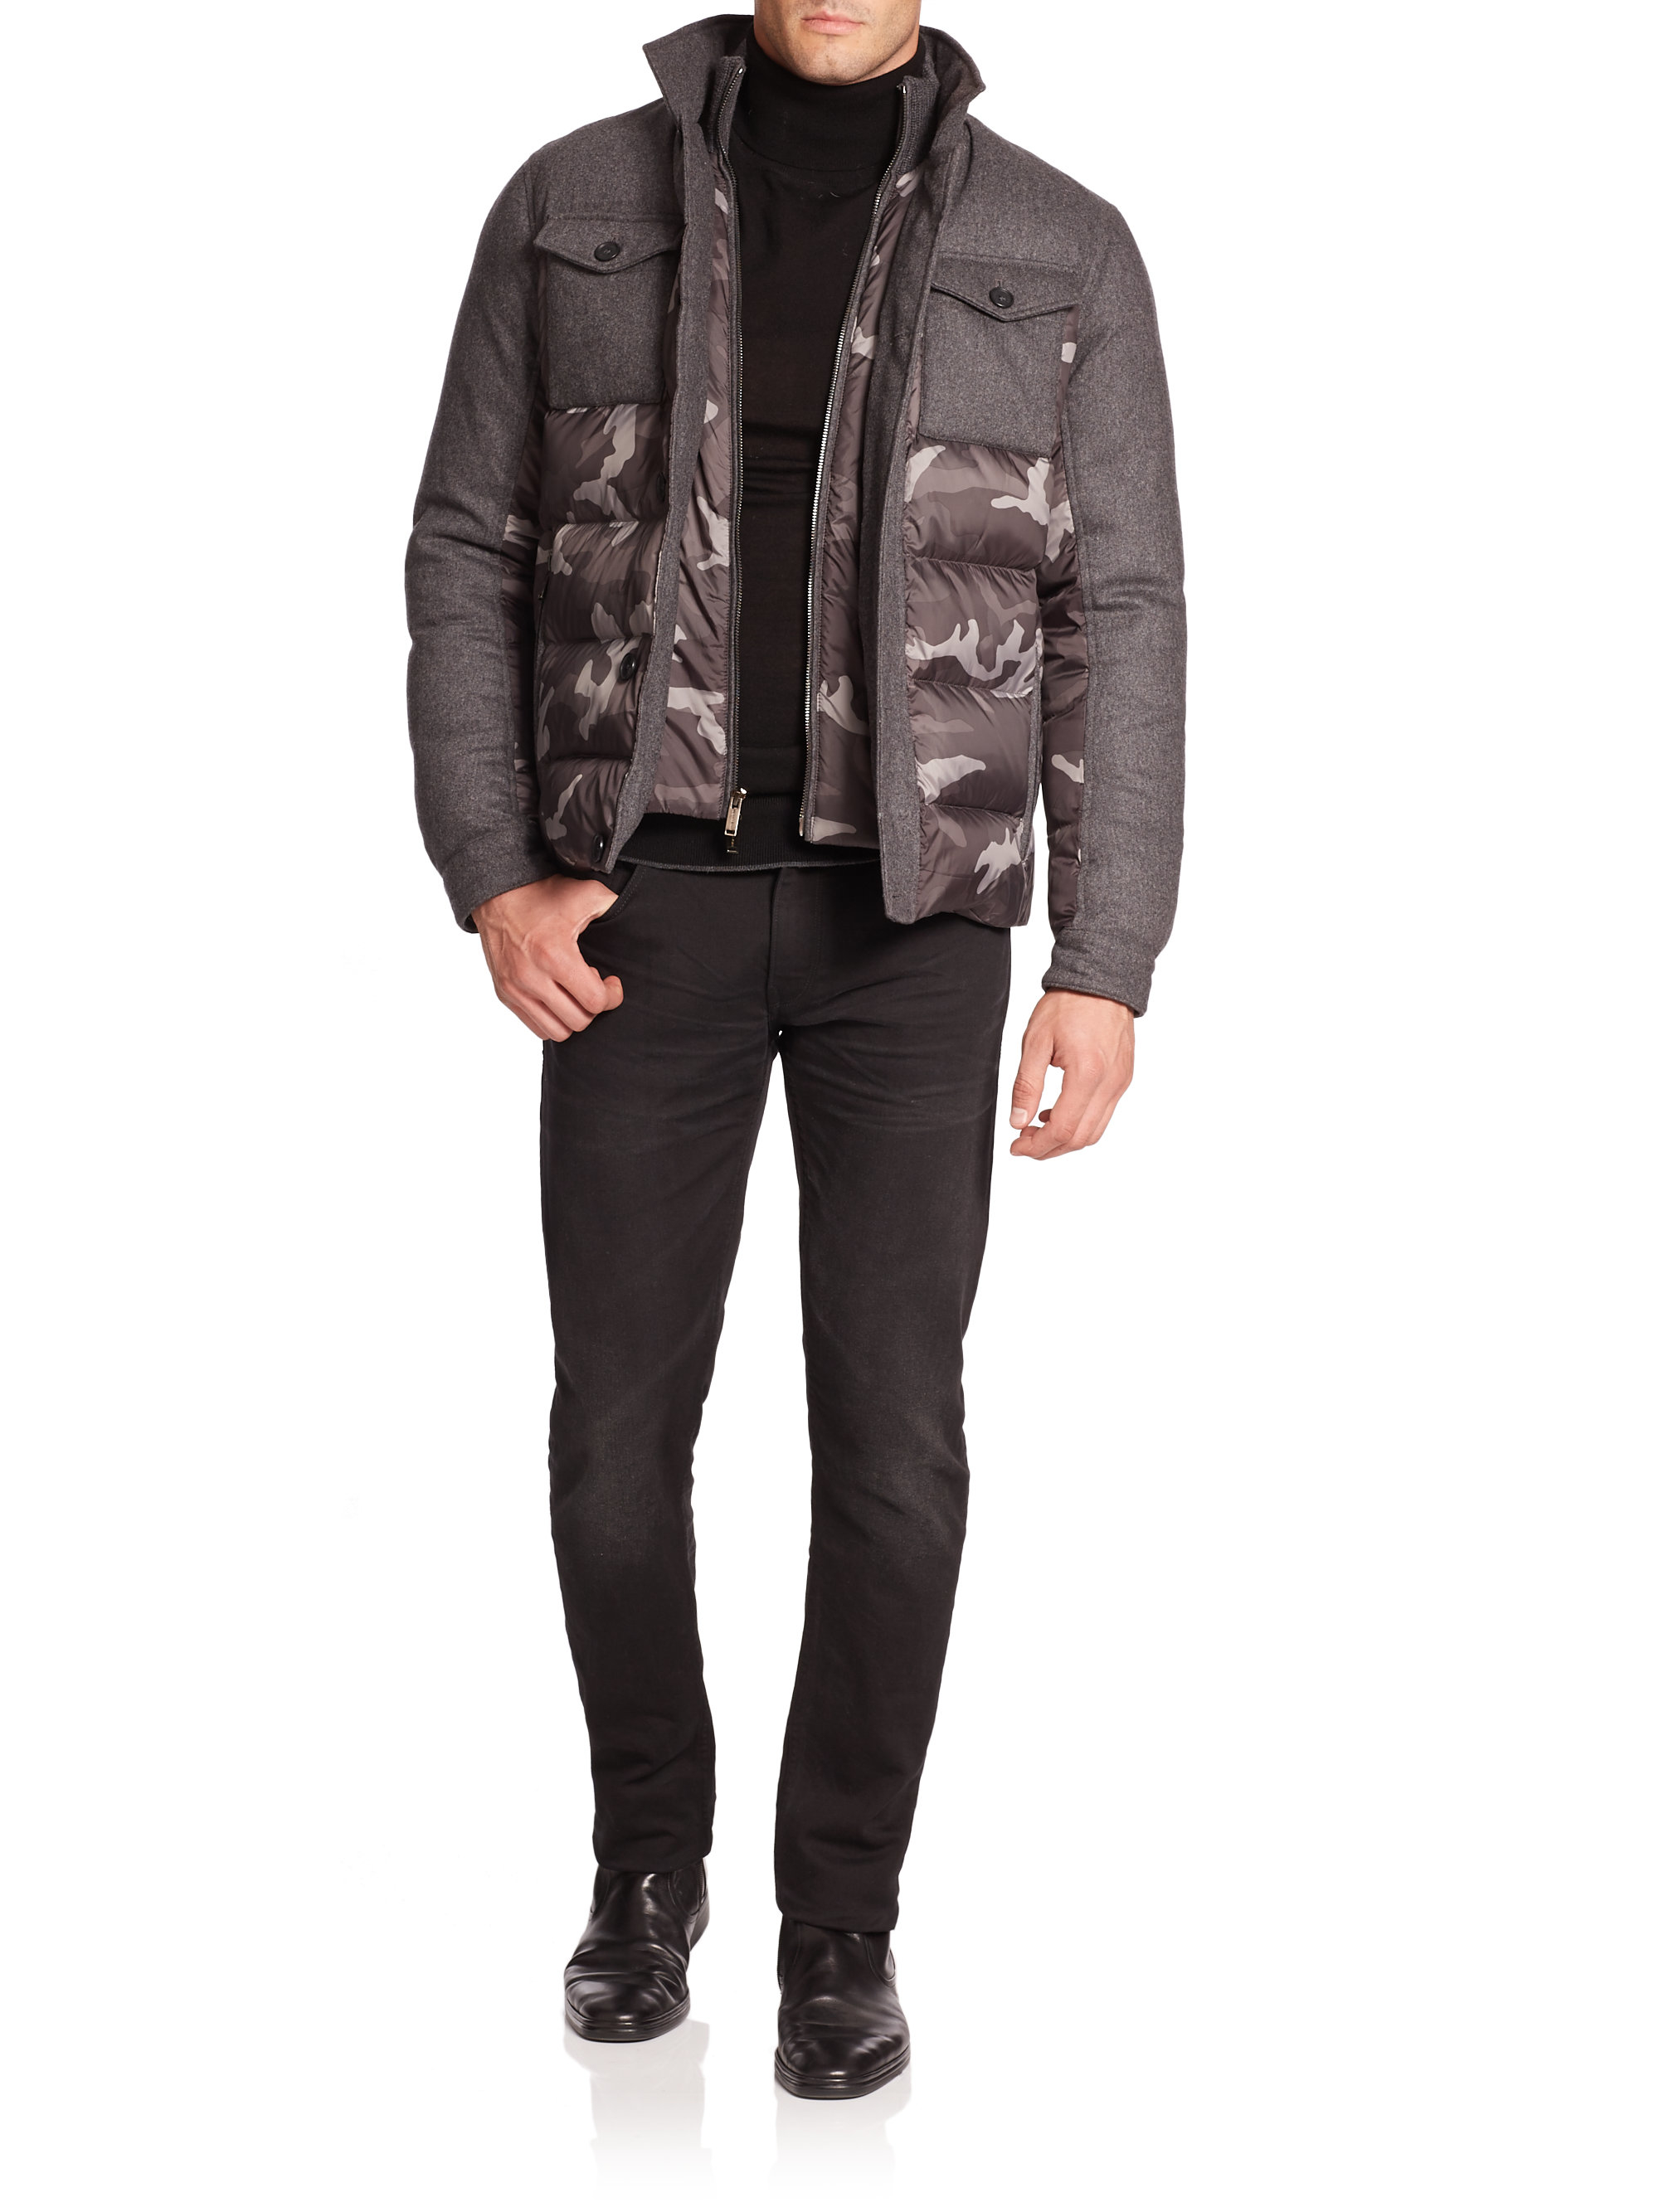 Lyst Michael Kors Camo Puffer Jacket In Gray For Men